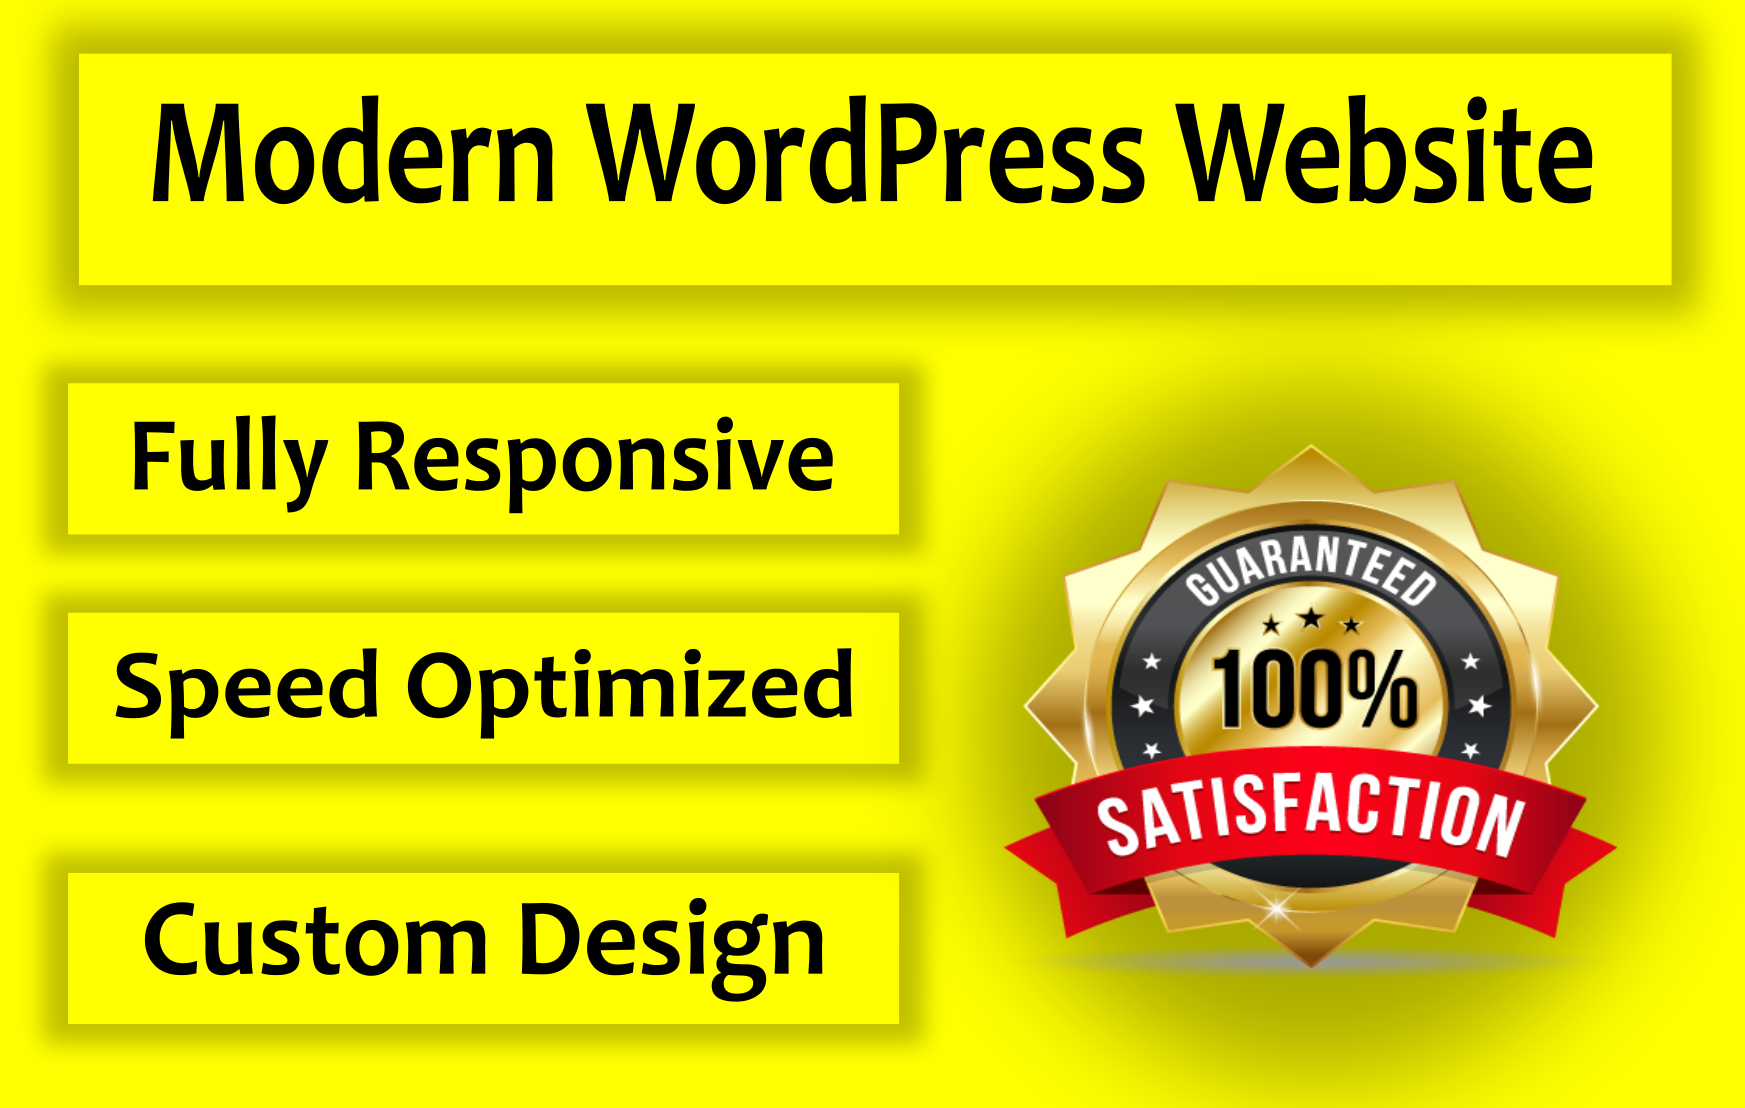 I will design a modern WordPress website